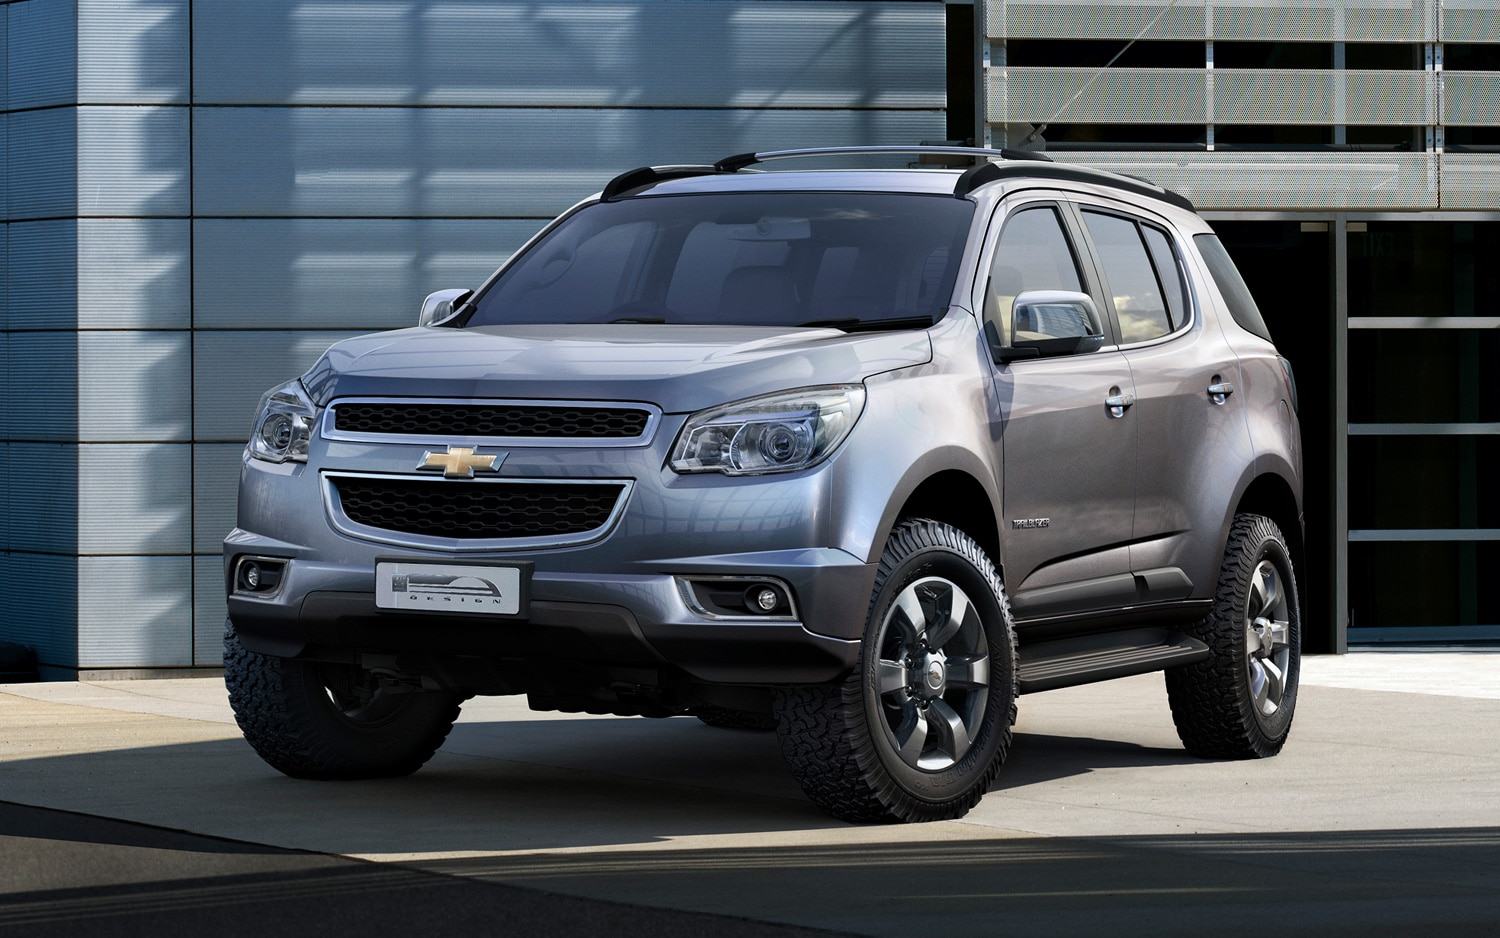 2013 Chevrolet Trailblazer Front Three Quarter1